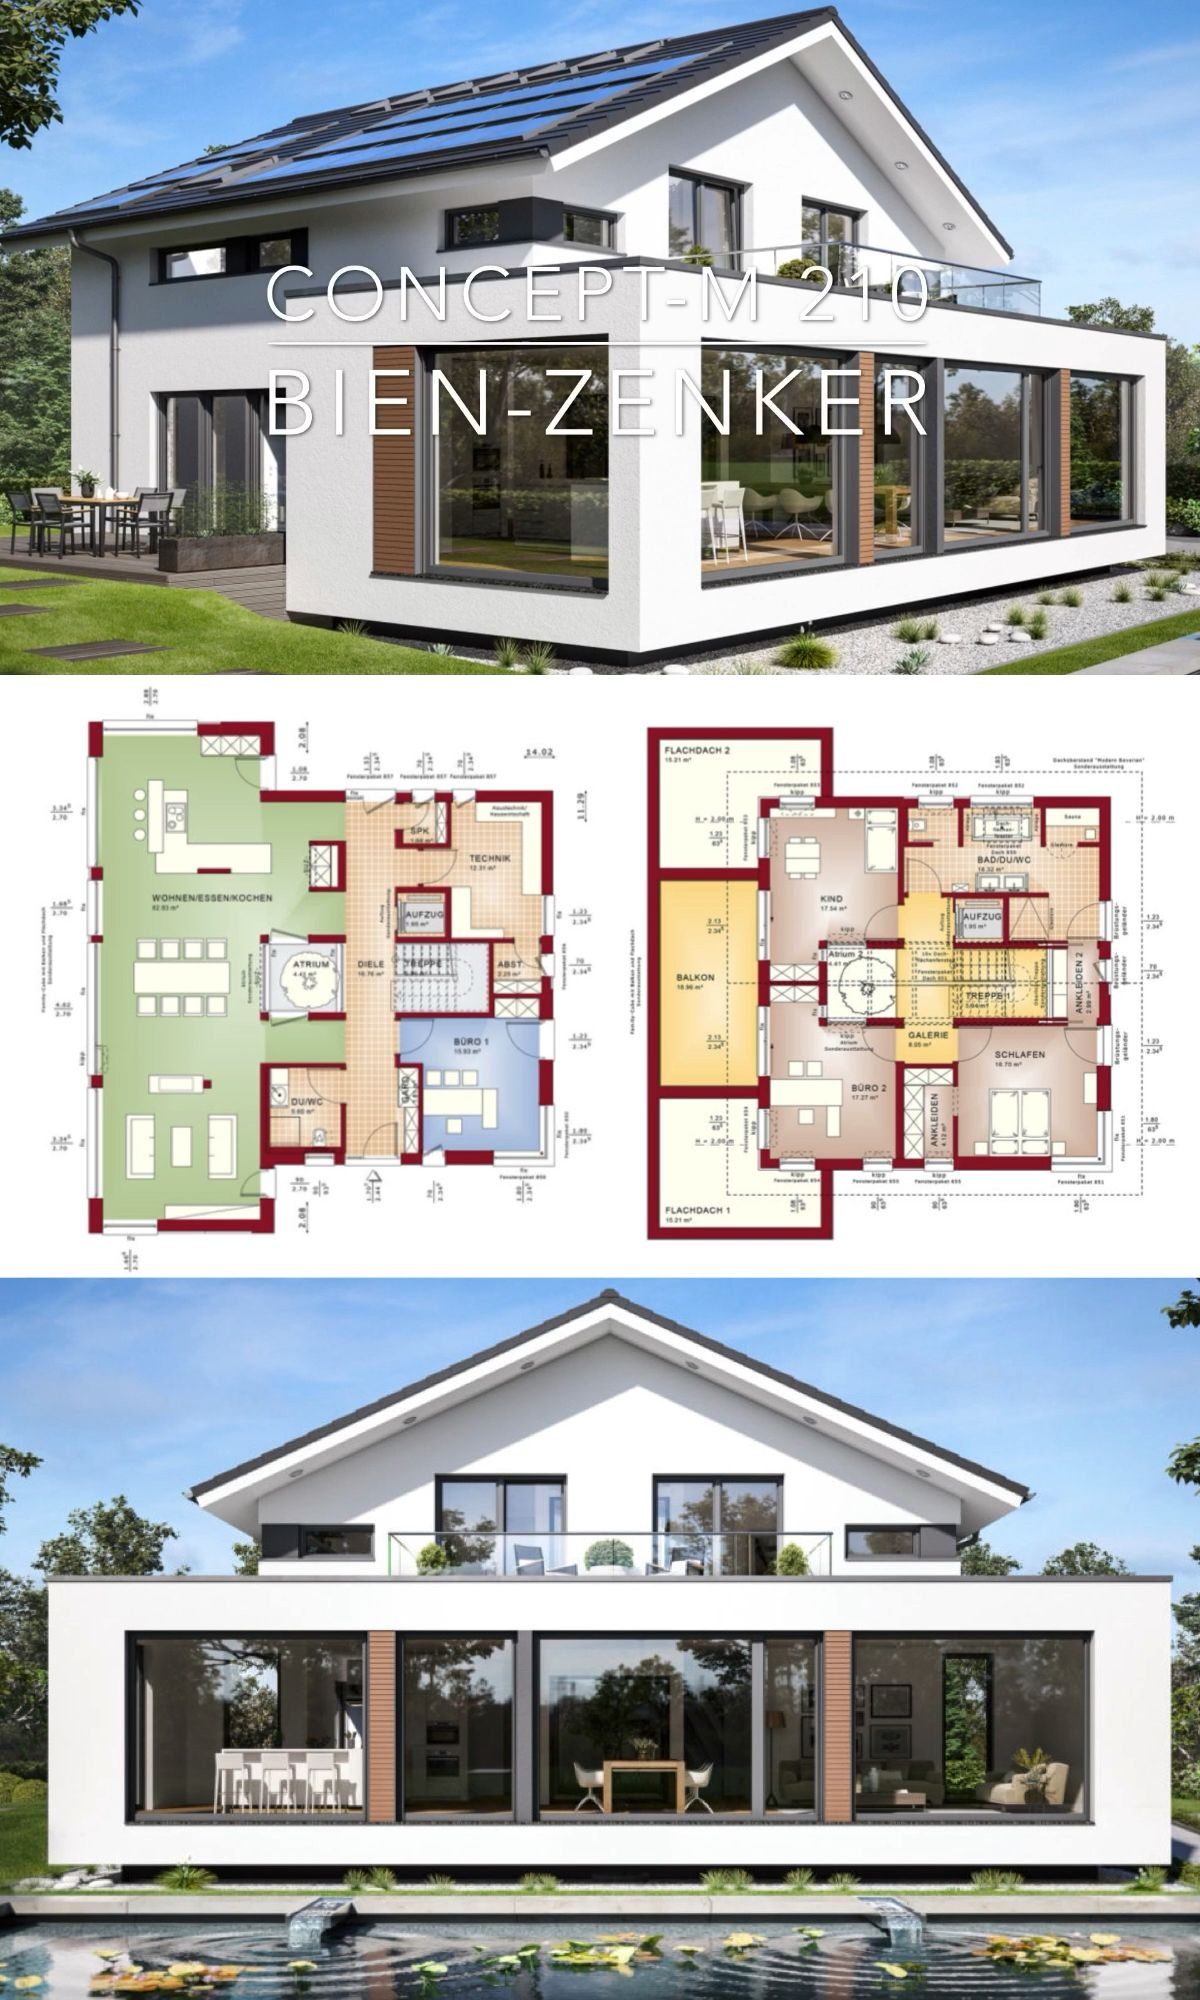 Modern Villa House Plans & Interior Architecture Design - Concept-M 210 #contemporarykitcheninterior